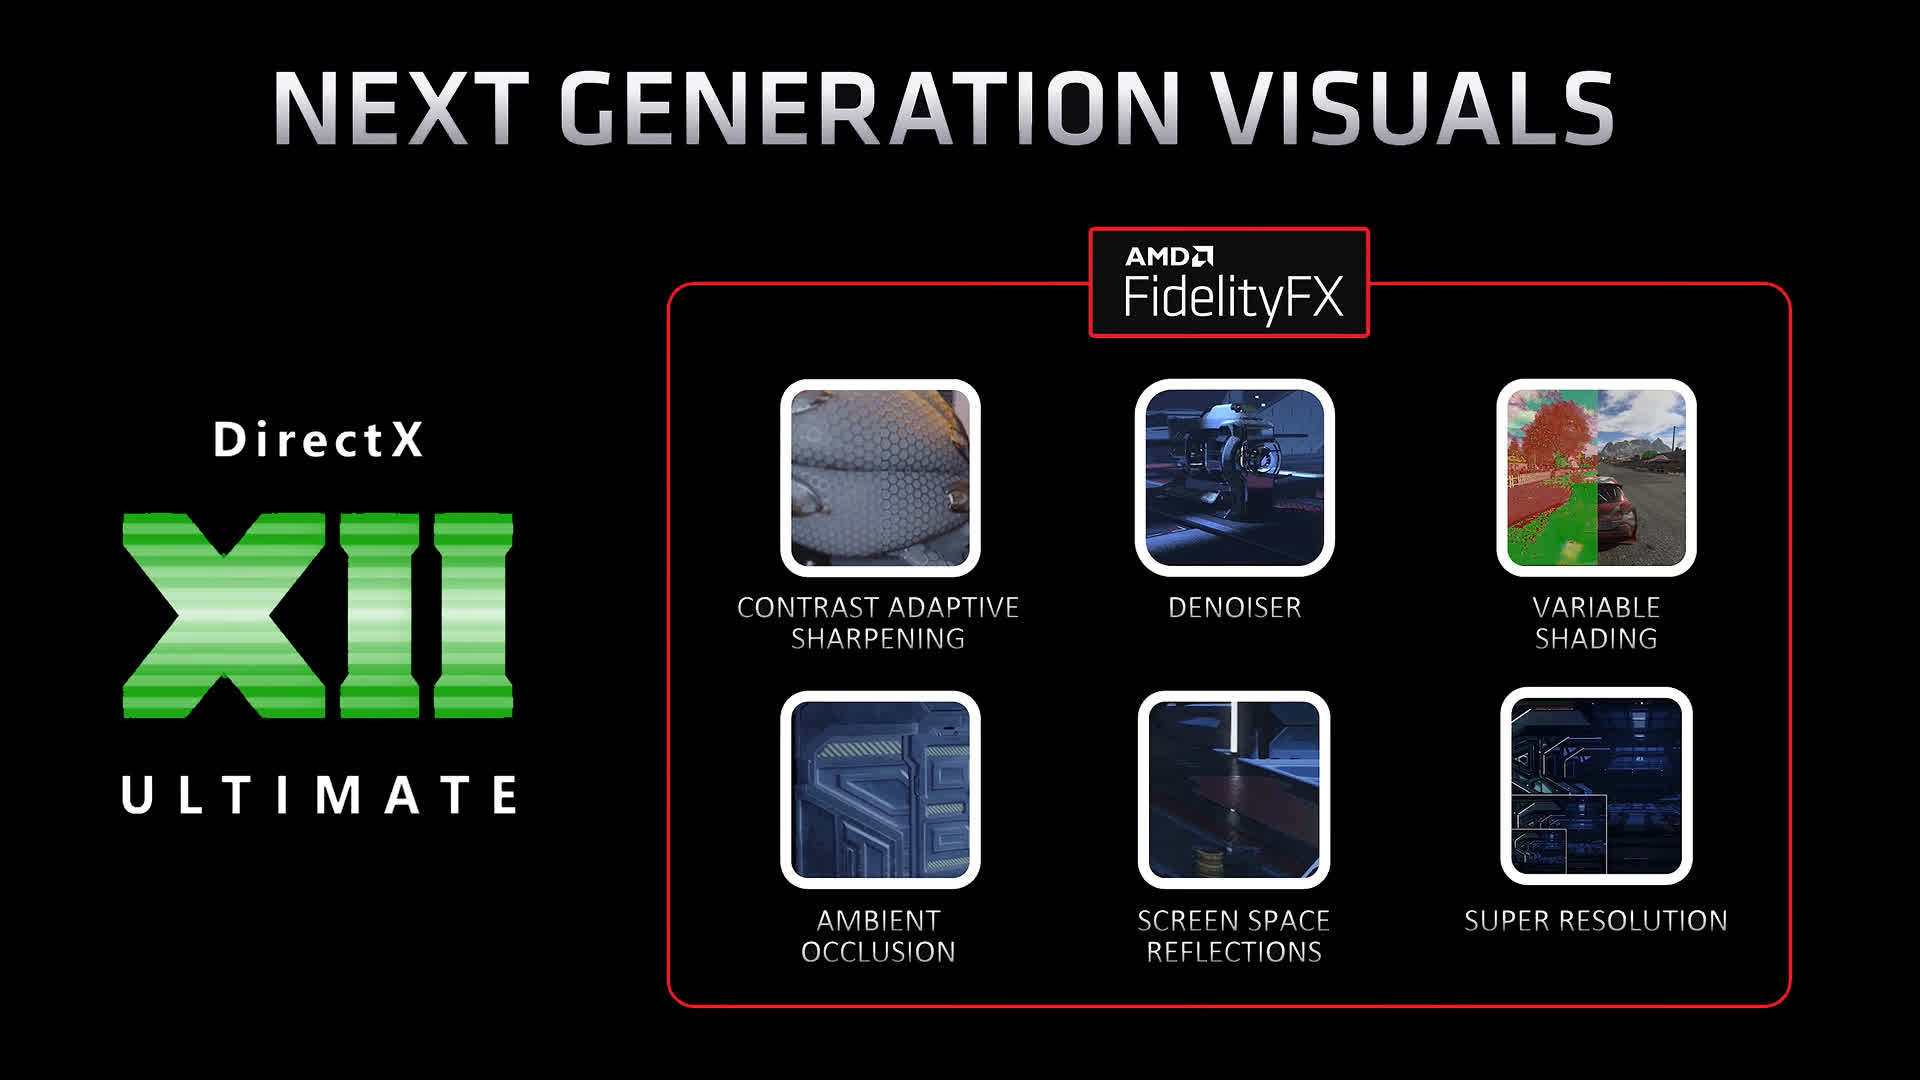 FidelityFX Super Resolution is AMD's answer to Nvidia's DLSS, set to debut this year